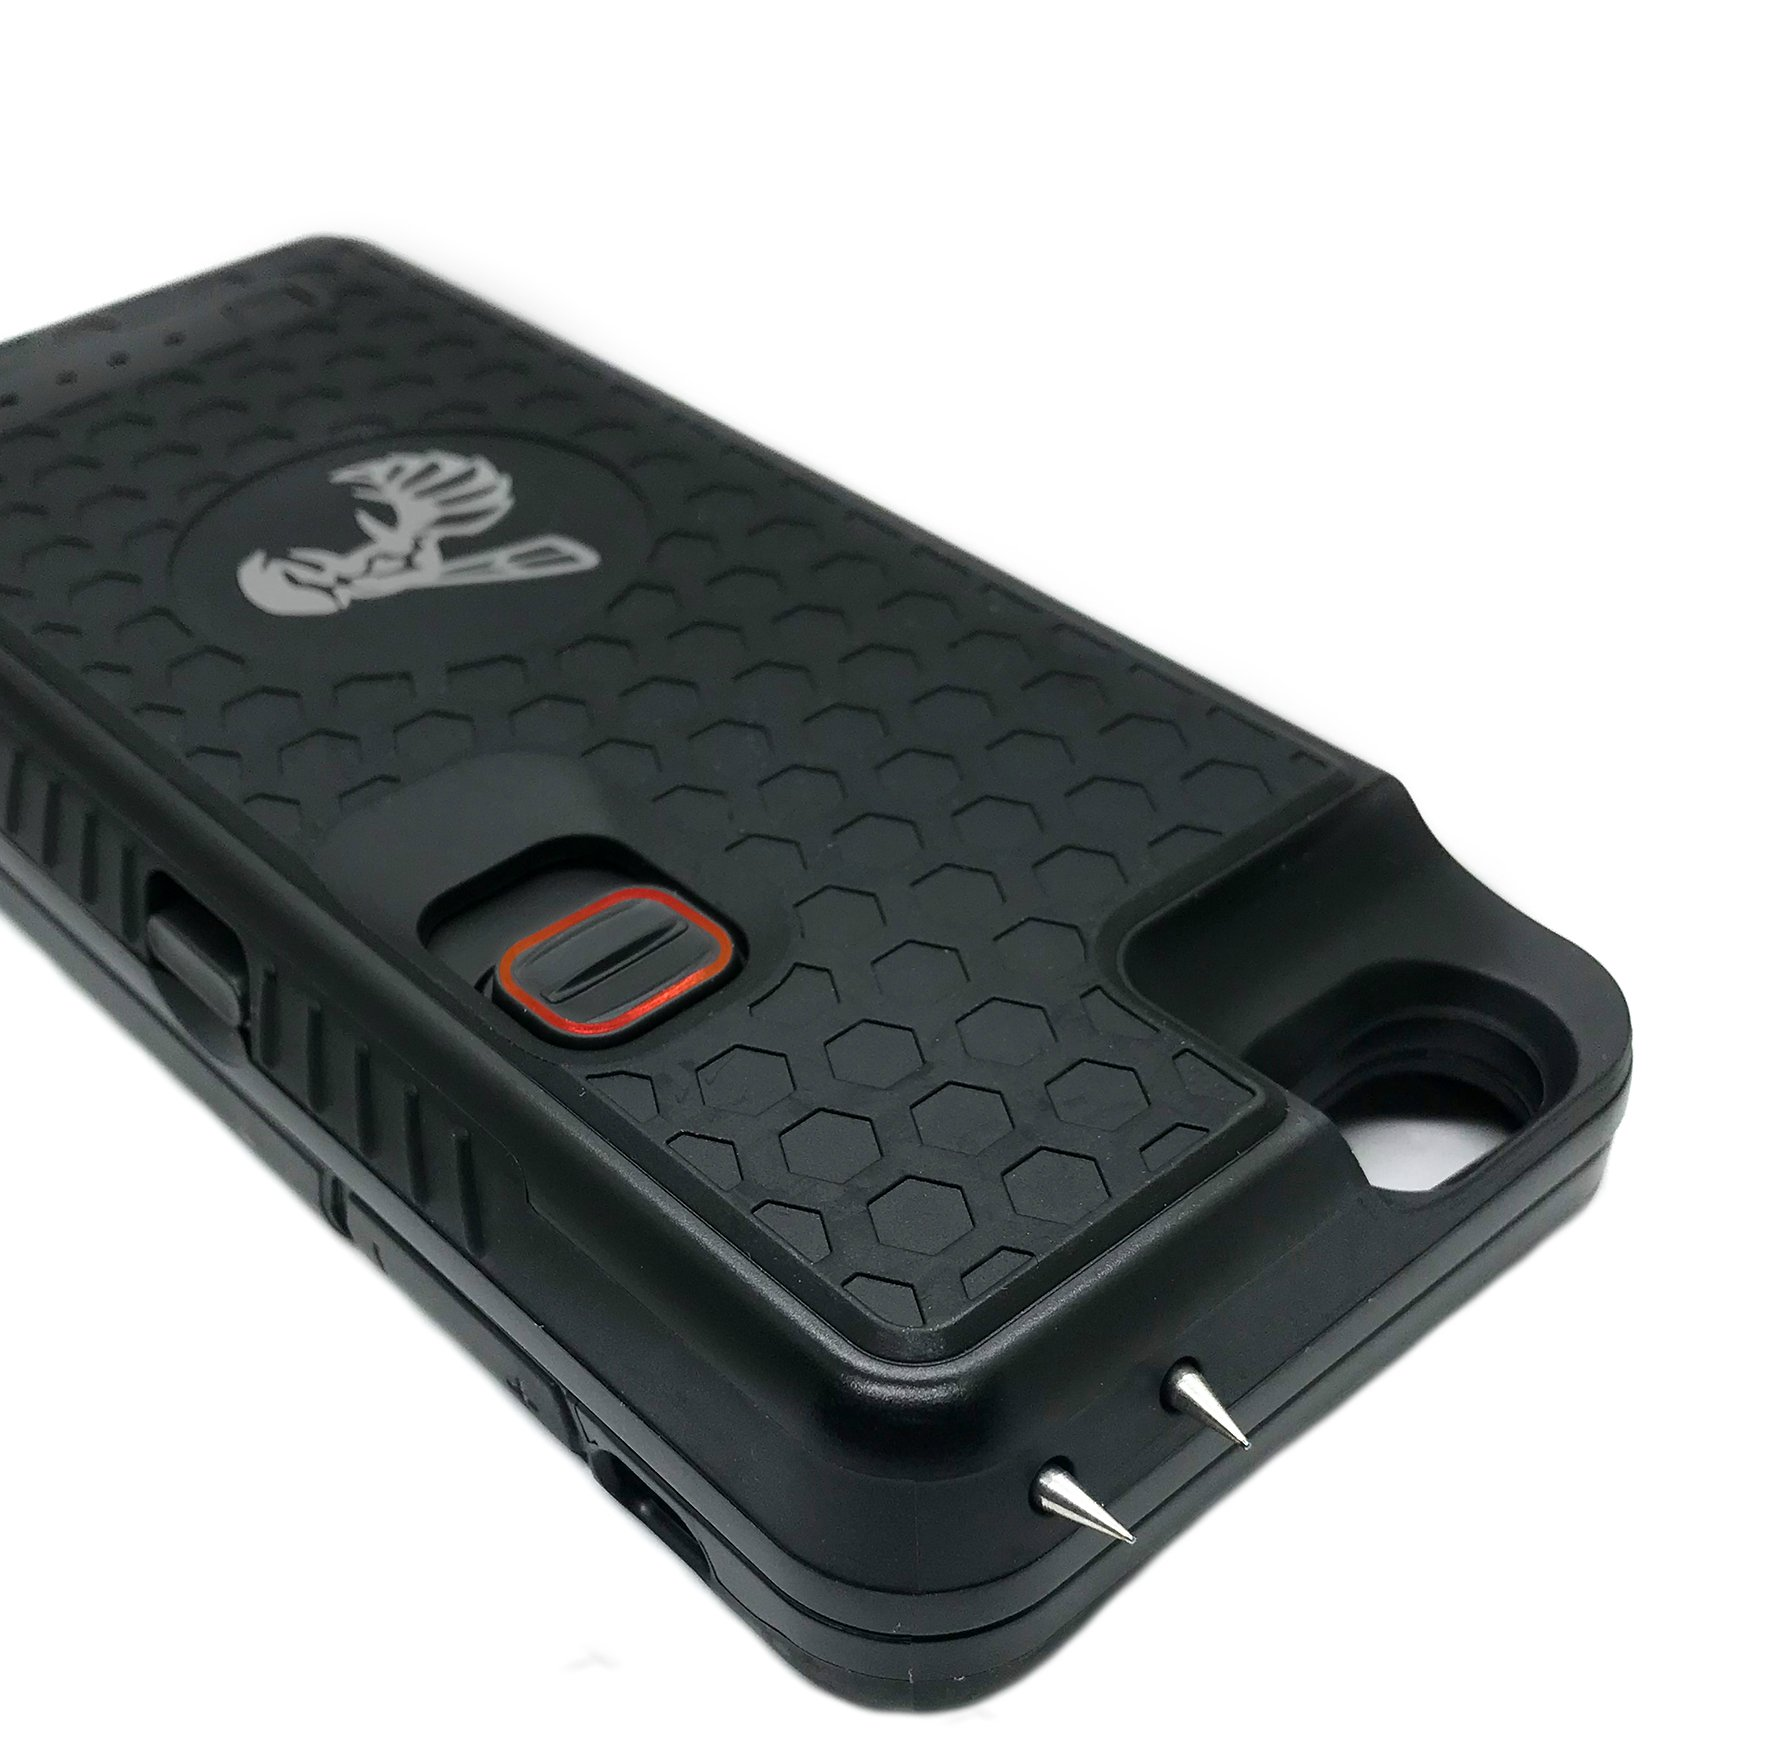 The Only High-Powered Stun Gun that Protects & Recharges Your iPhone 6/6s - Concealed Inside a Durable Weatherproof Case - Flexibility to Attach/Detach - 4.0mAh for Maximum Self Defense - Black